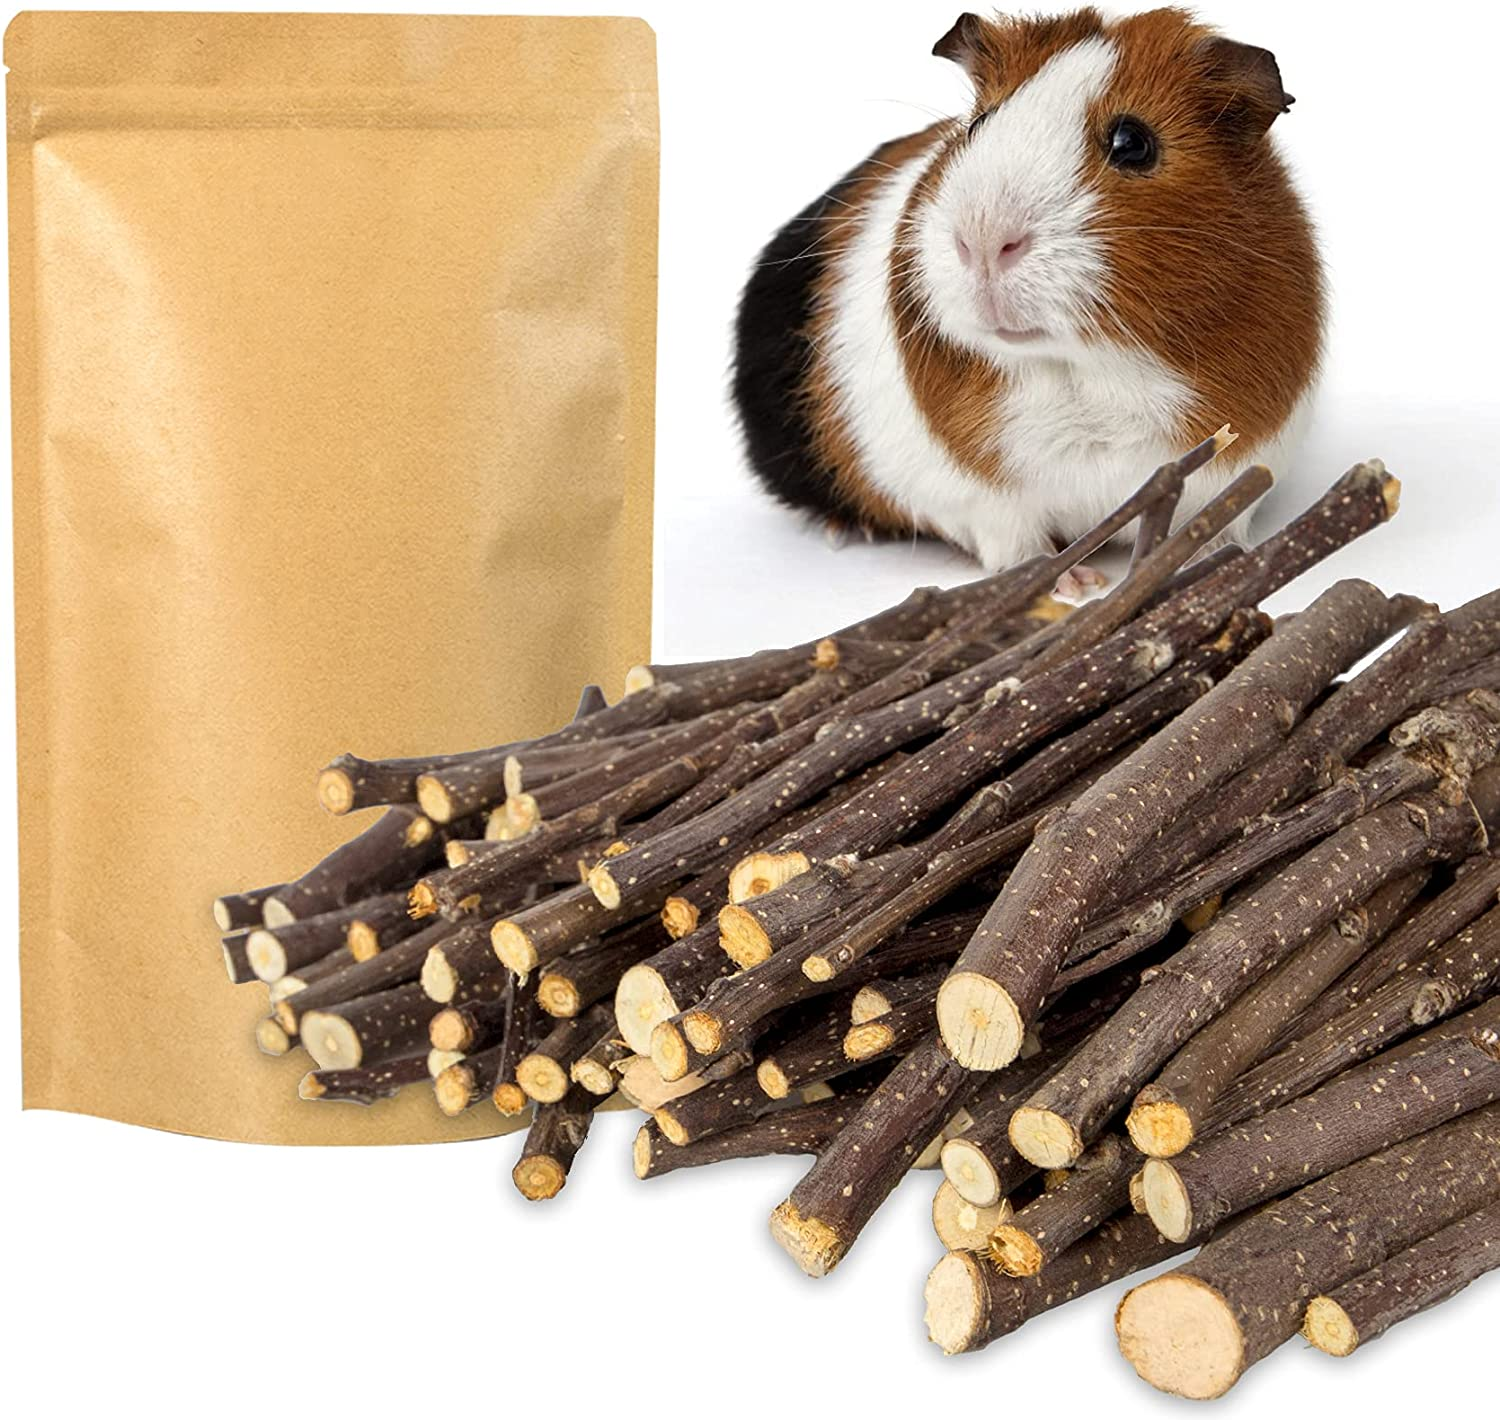 QUTOP 300g Natural Apple Sticks for Rabbits Chinchillas Help The Healthy Growth of Teeth, Apple Wood Treats Sticks for Small Animals, Wooden Chew Stick Snack Toys